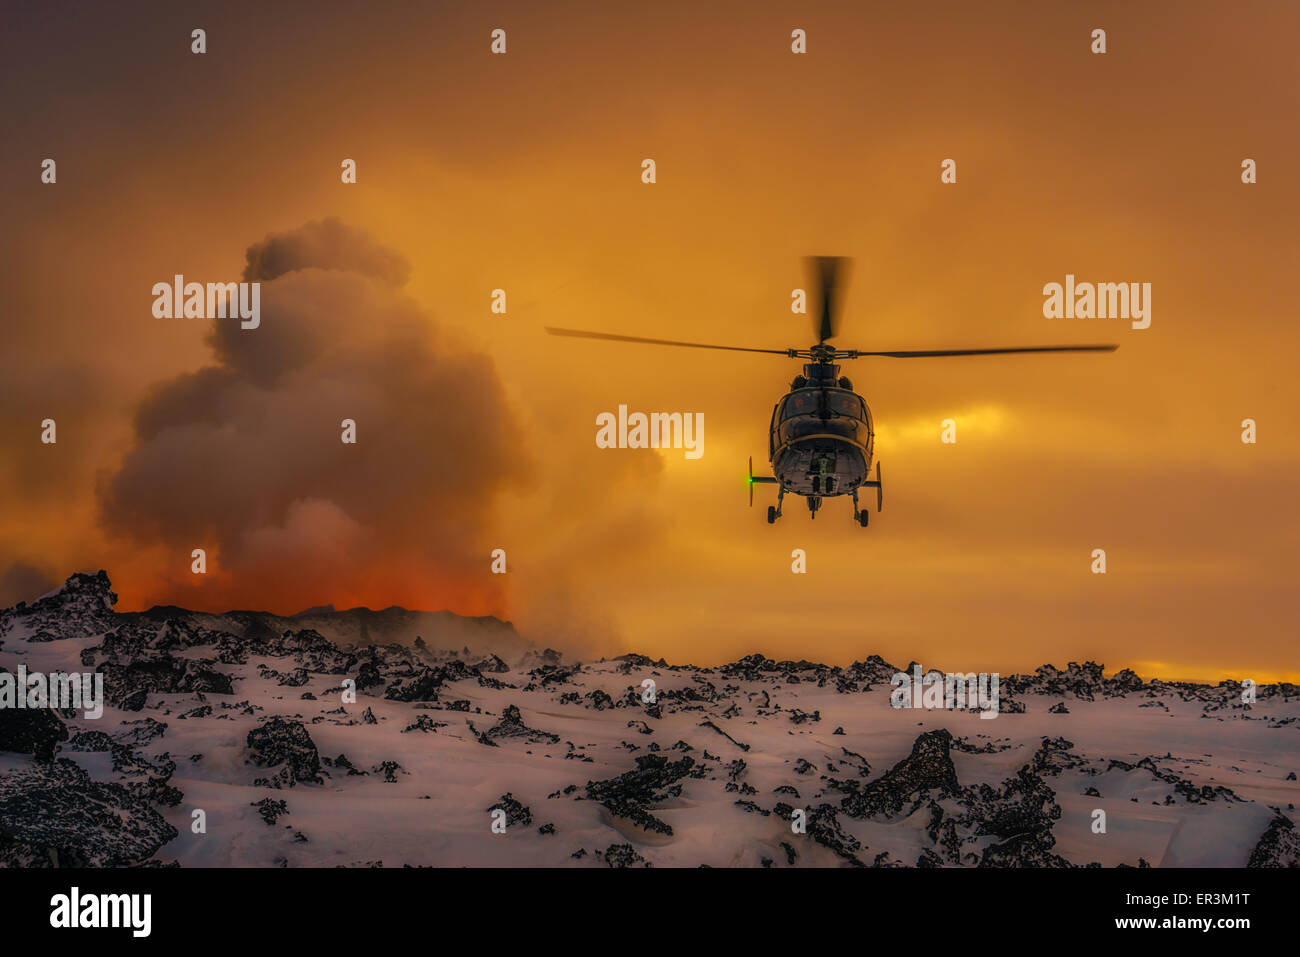 Helicopter flying by the volcano eruption at the Holuhraun Fissure, Bardarbunga Volcano, Iceland. - Stock Image